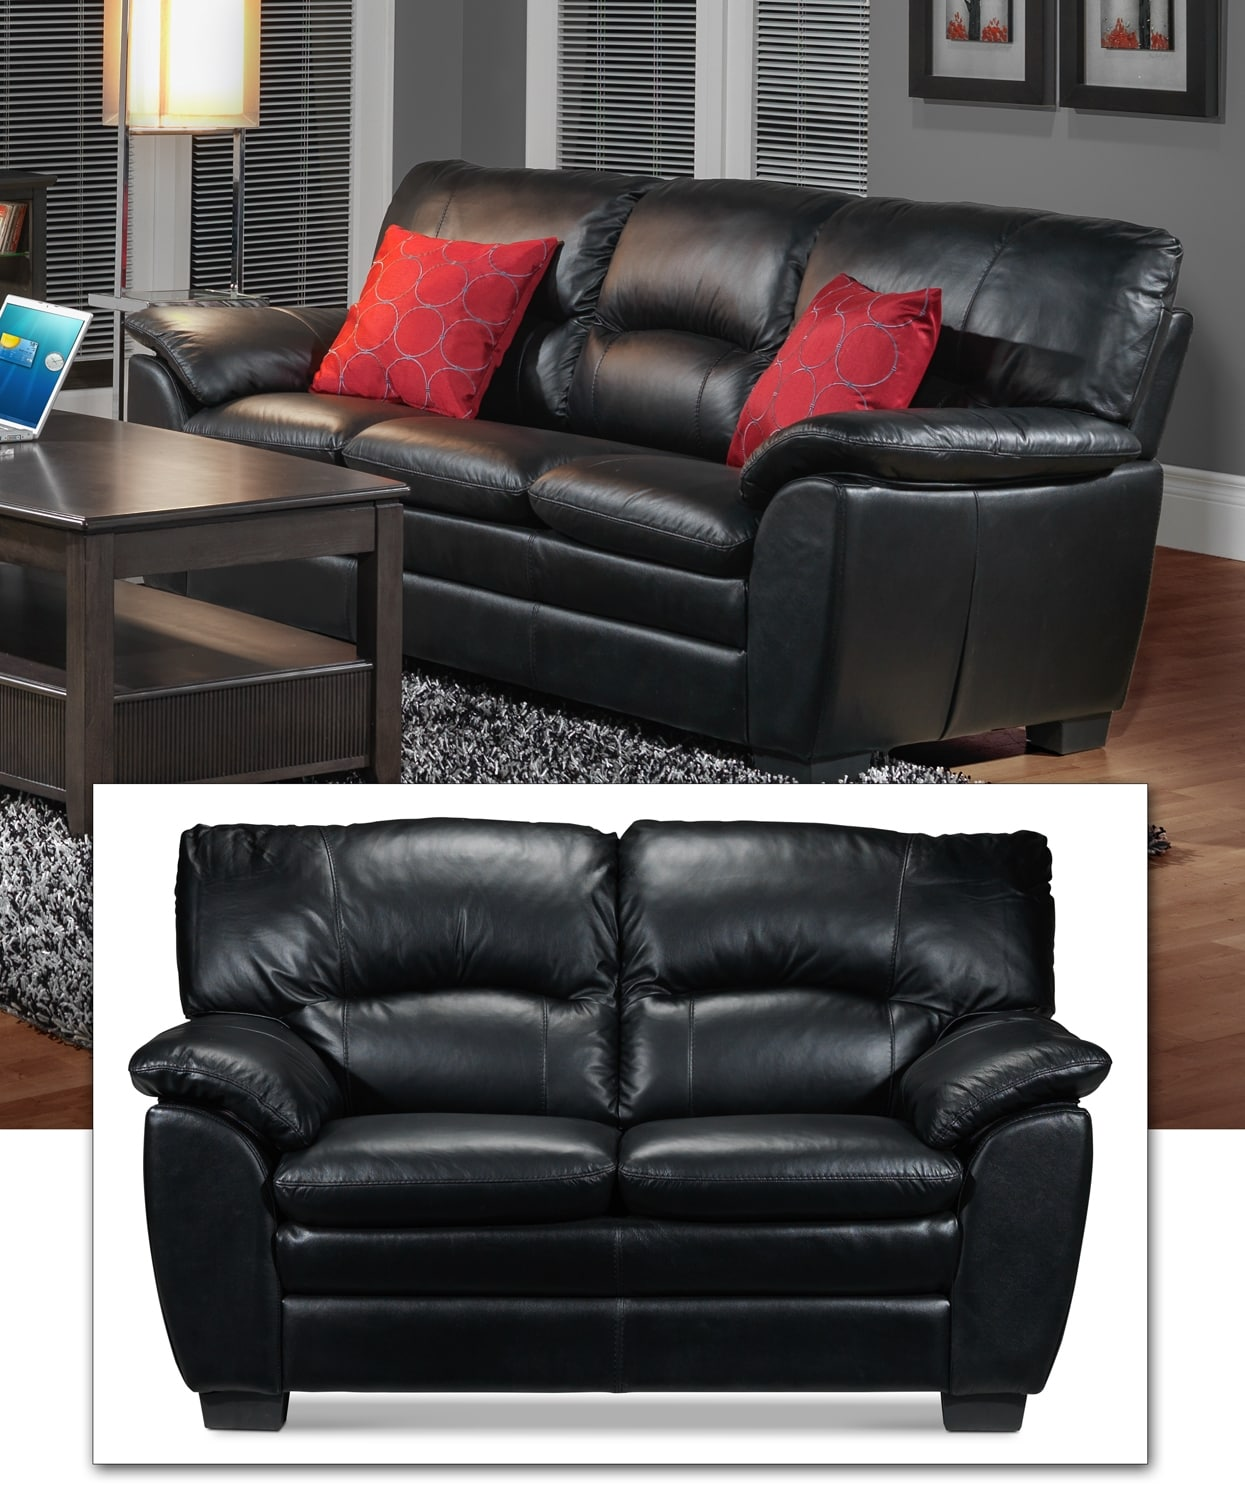 Rodero Sofa and Loveseat Set - Black